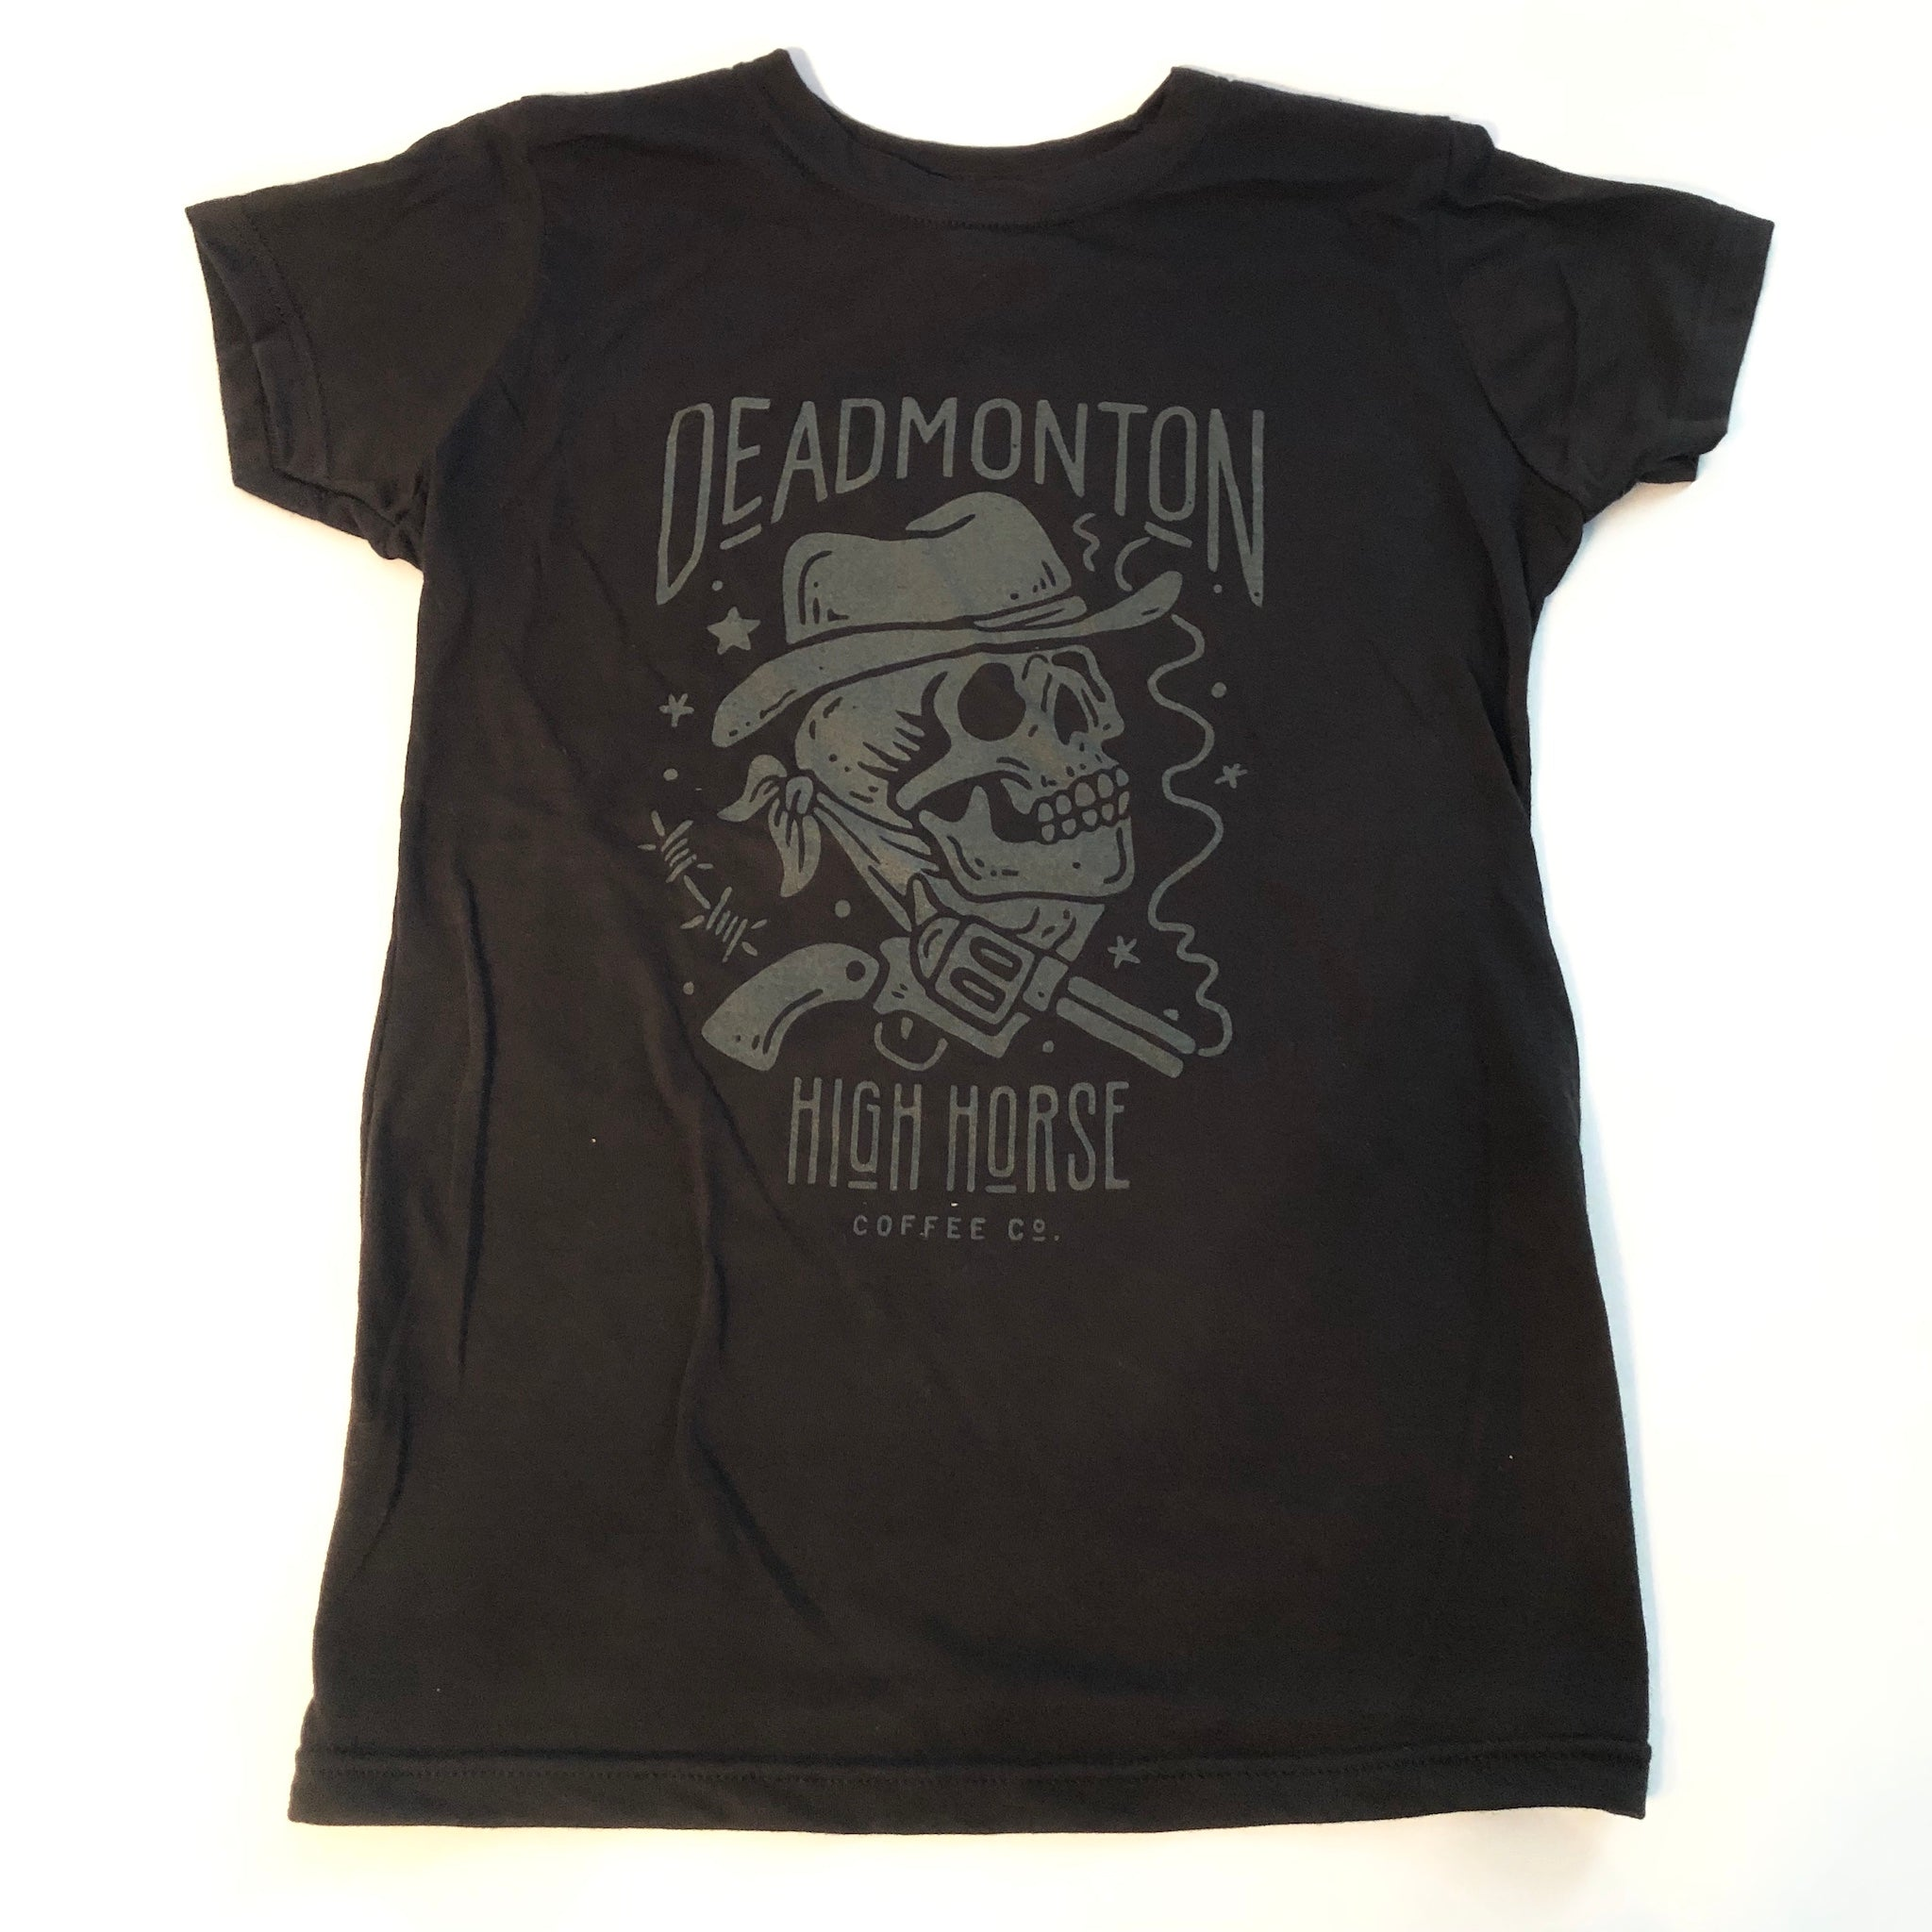 Deadmonton Tee - Black - Women's - High Horse Coffee Company